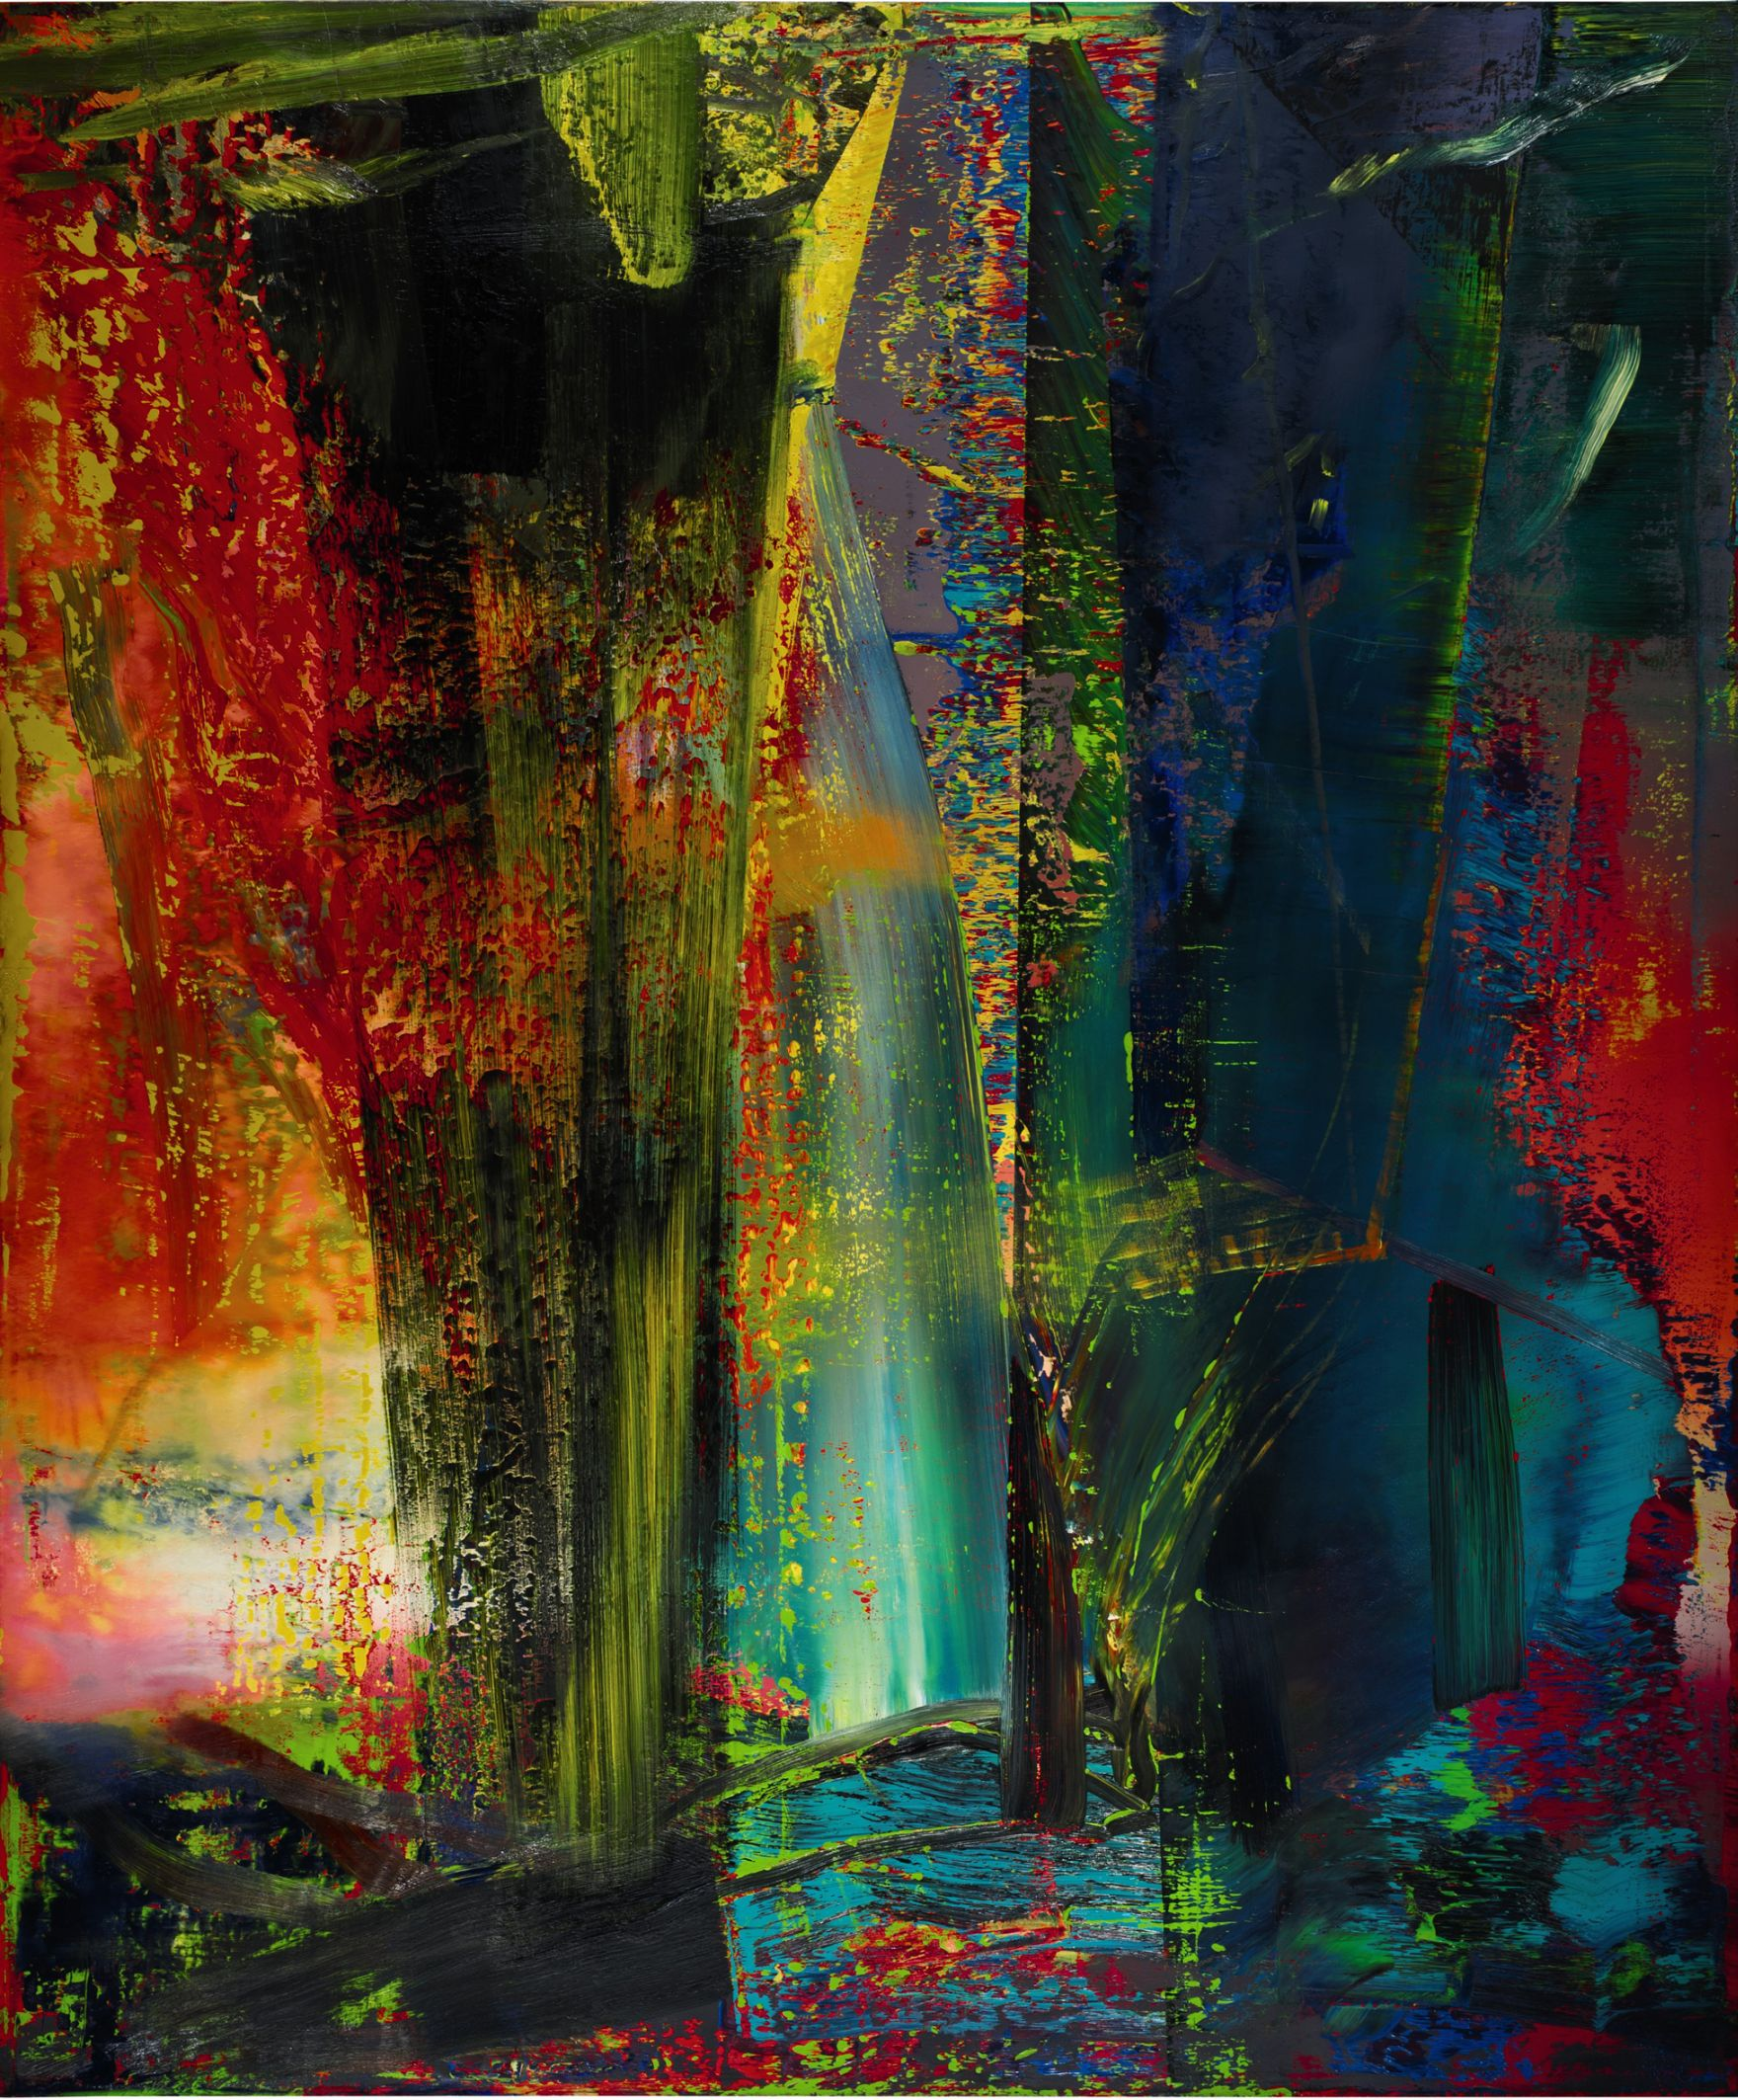 Abstrakte Bilder Gerhard Richter New Records For Gerhard Richter Jonas Wood At Buoyant